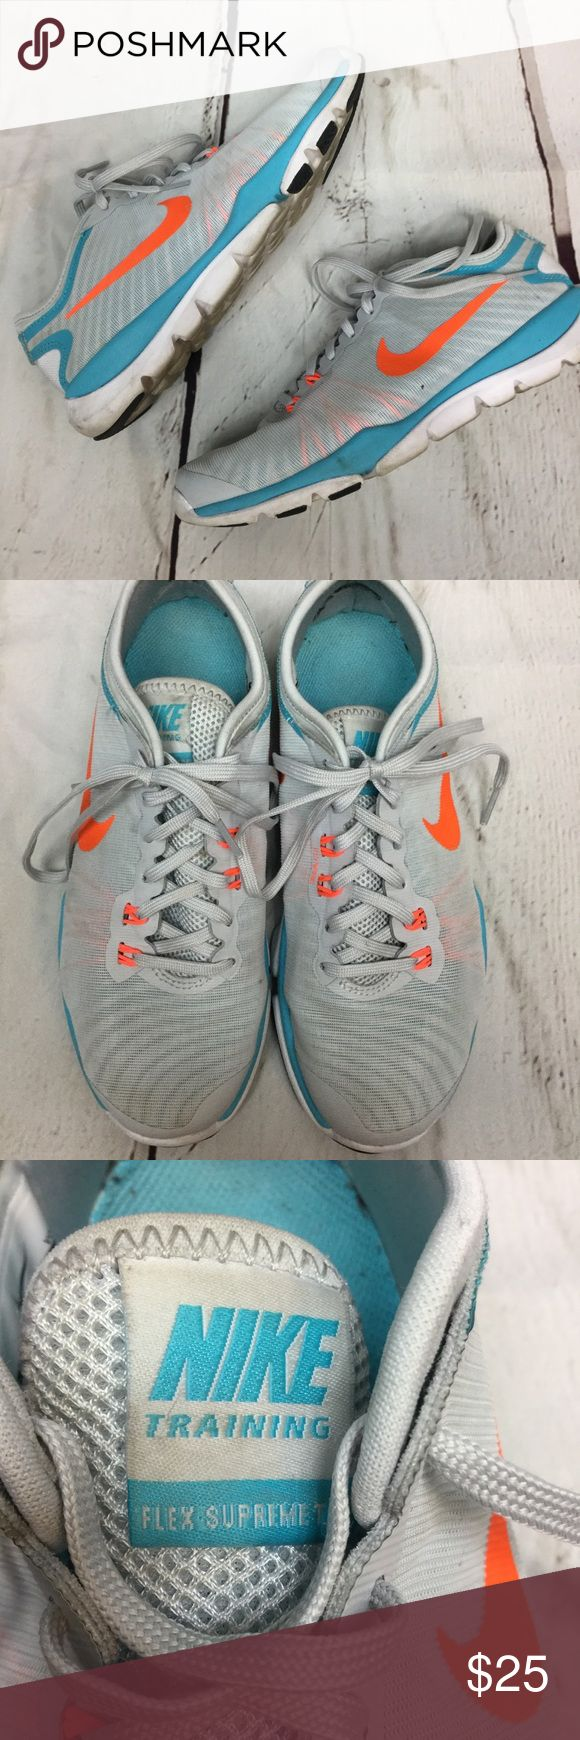 Nike training shoes Preowned, Nike shoes. Good condition. A few scuffs and minor stains that could be washed off. Nike Shoes Athletic Shoes